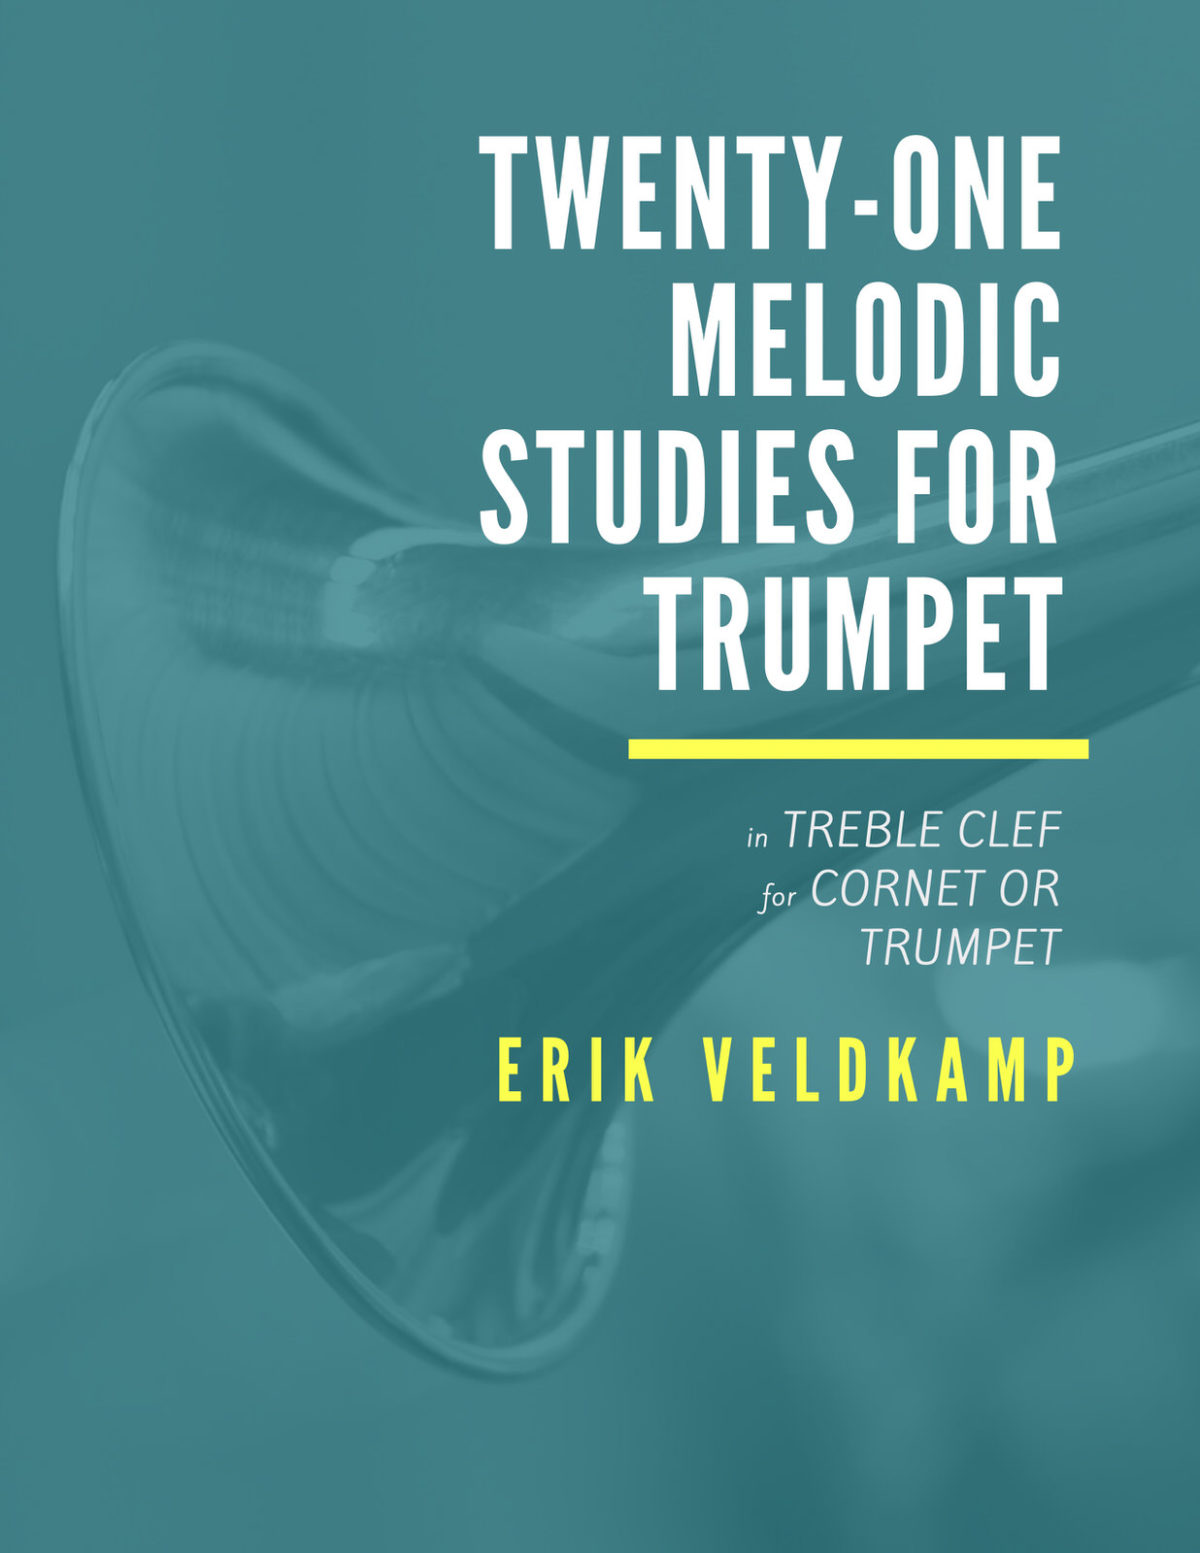 Veldkamp, 21 Melodic Studies for Trumpet